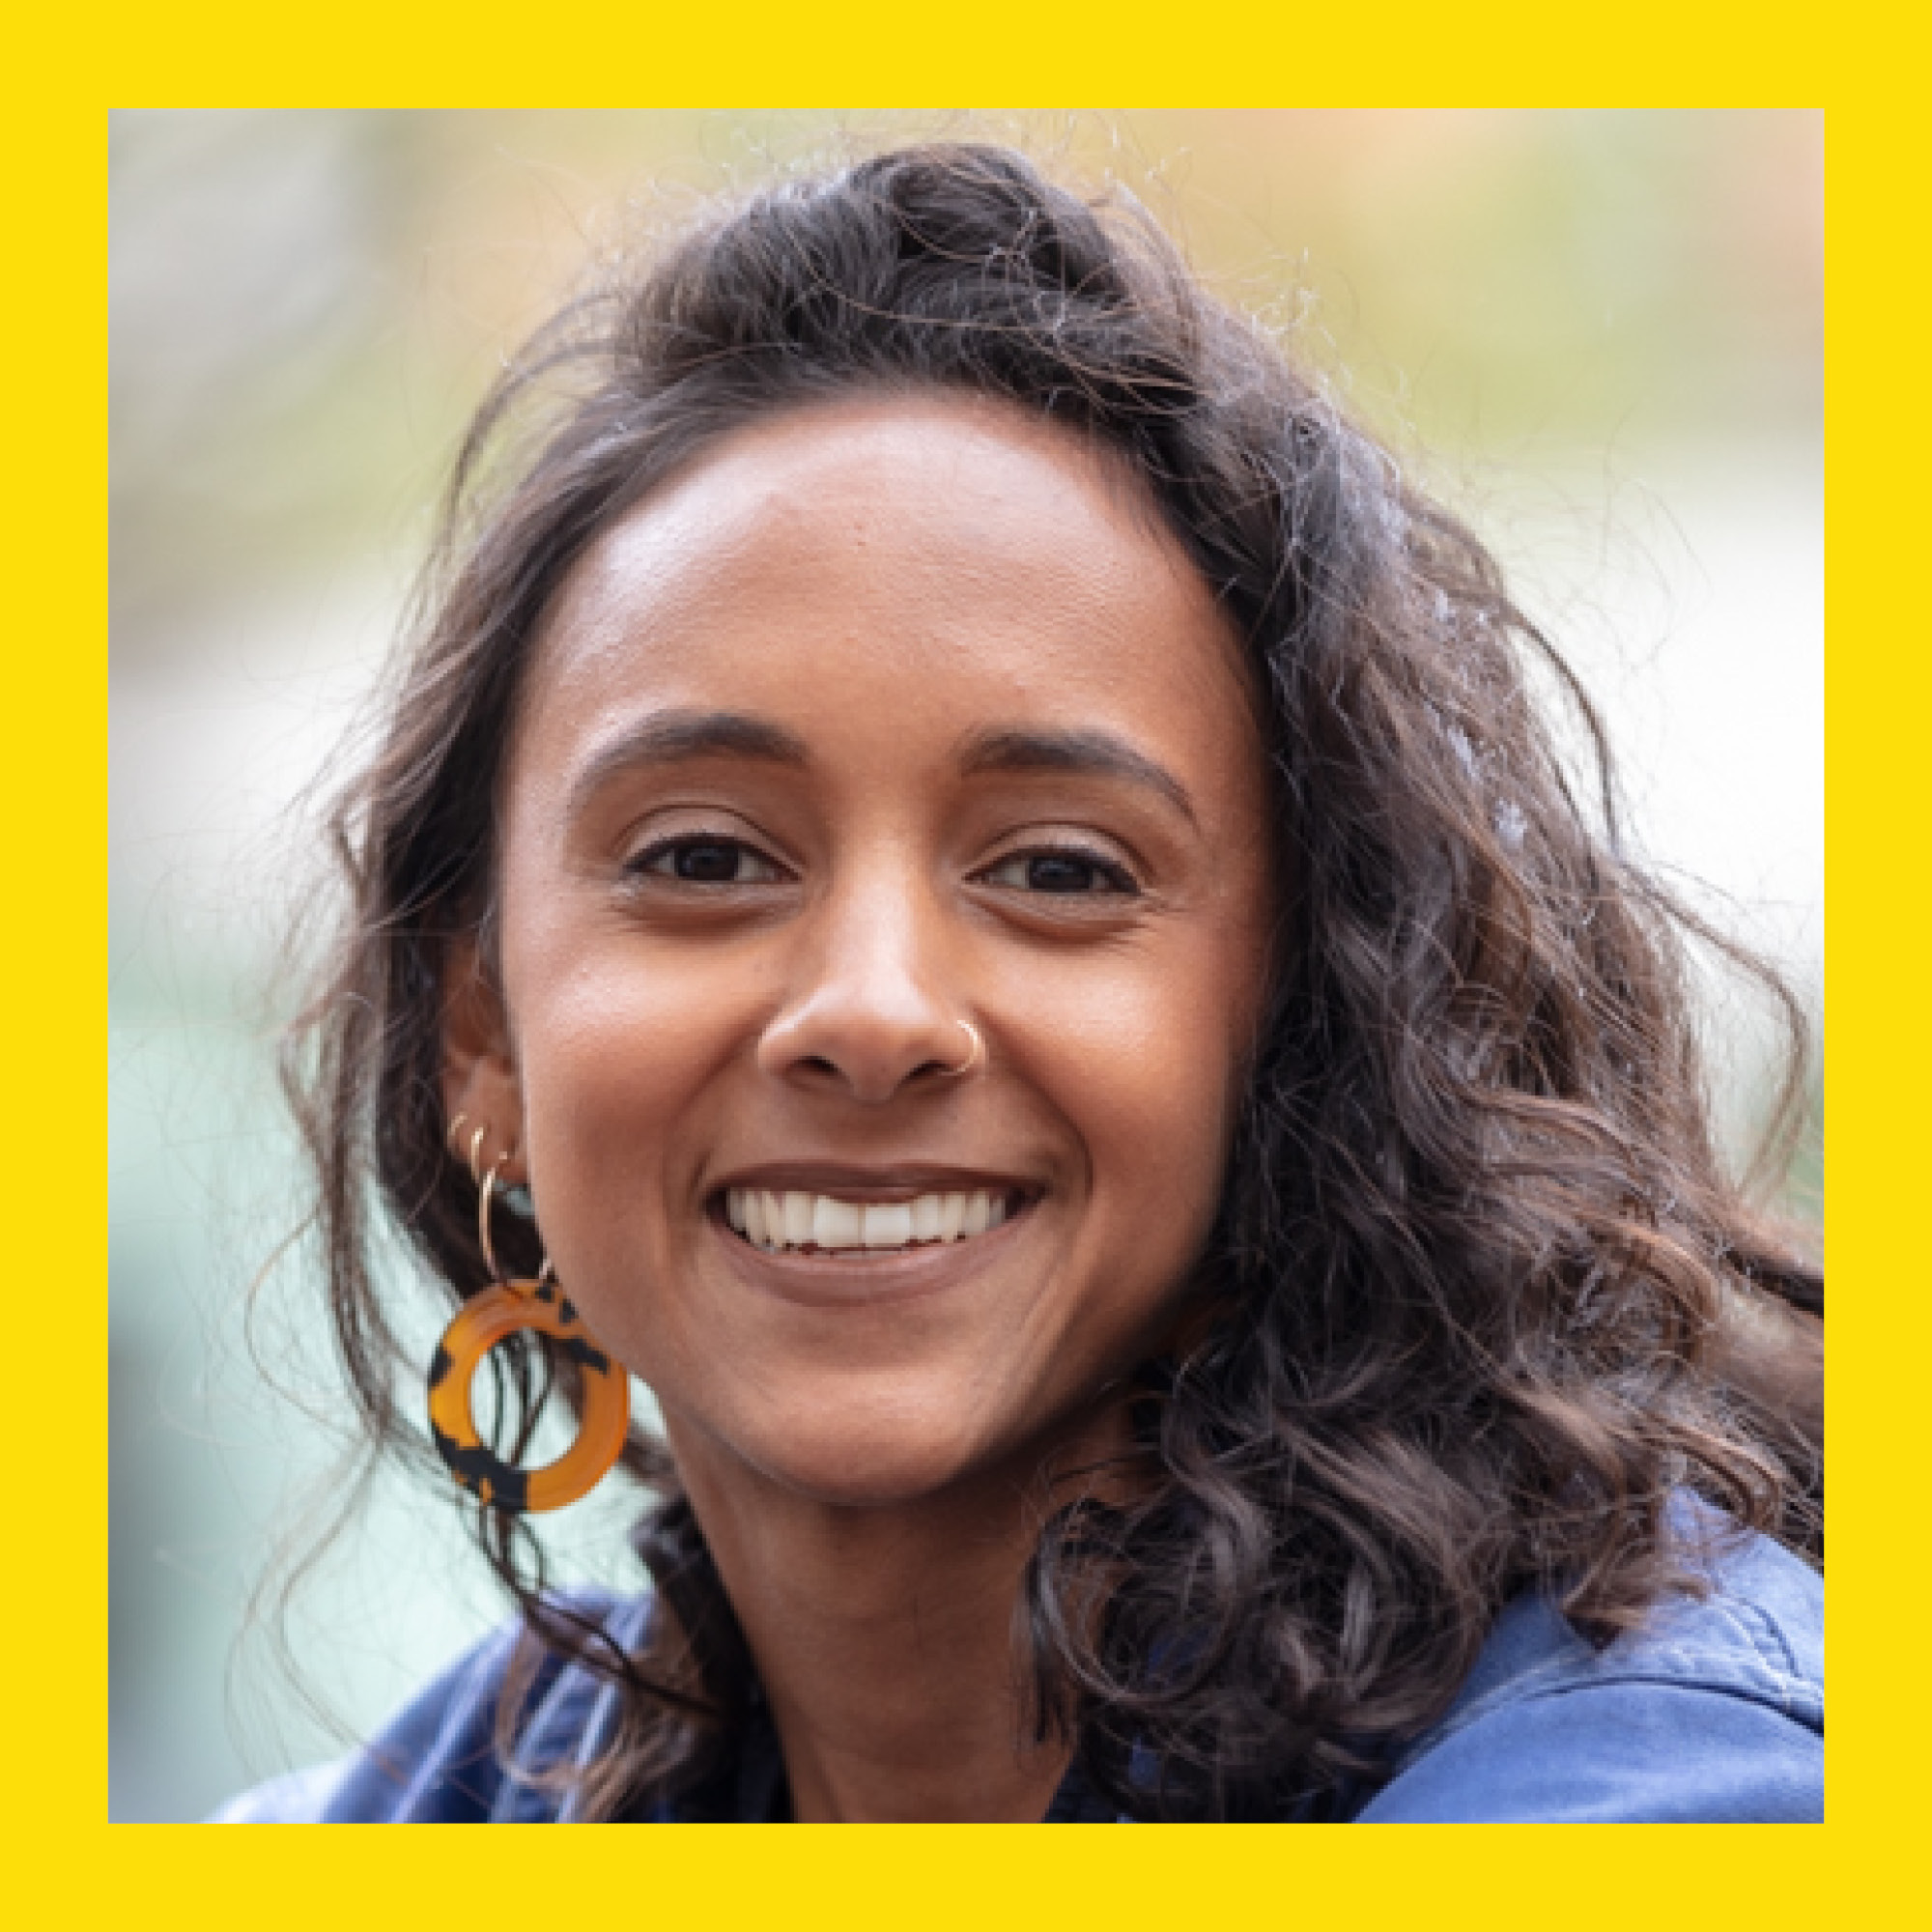 Anu Henriques is the founder and editor of Skin Deep, a creative powerhouse that is redefining culture and amplifying voices of colour through discussions of race, politics and activism. The online platform, biannual print publication and live events tell the stories others don't. Skin Deep collaborates with creatives, musicians, writers, artists and activists to produce and platform original and thought-provoking content which is fresh and accessible. Anu also works across development and production at Fable Pictures and recently worked on Sarah Gavron's latest Girl Untitled project as associate director. -